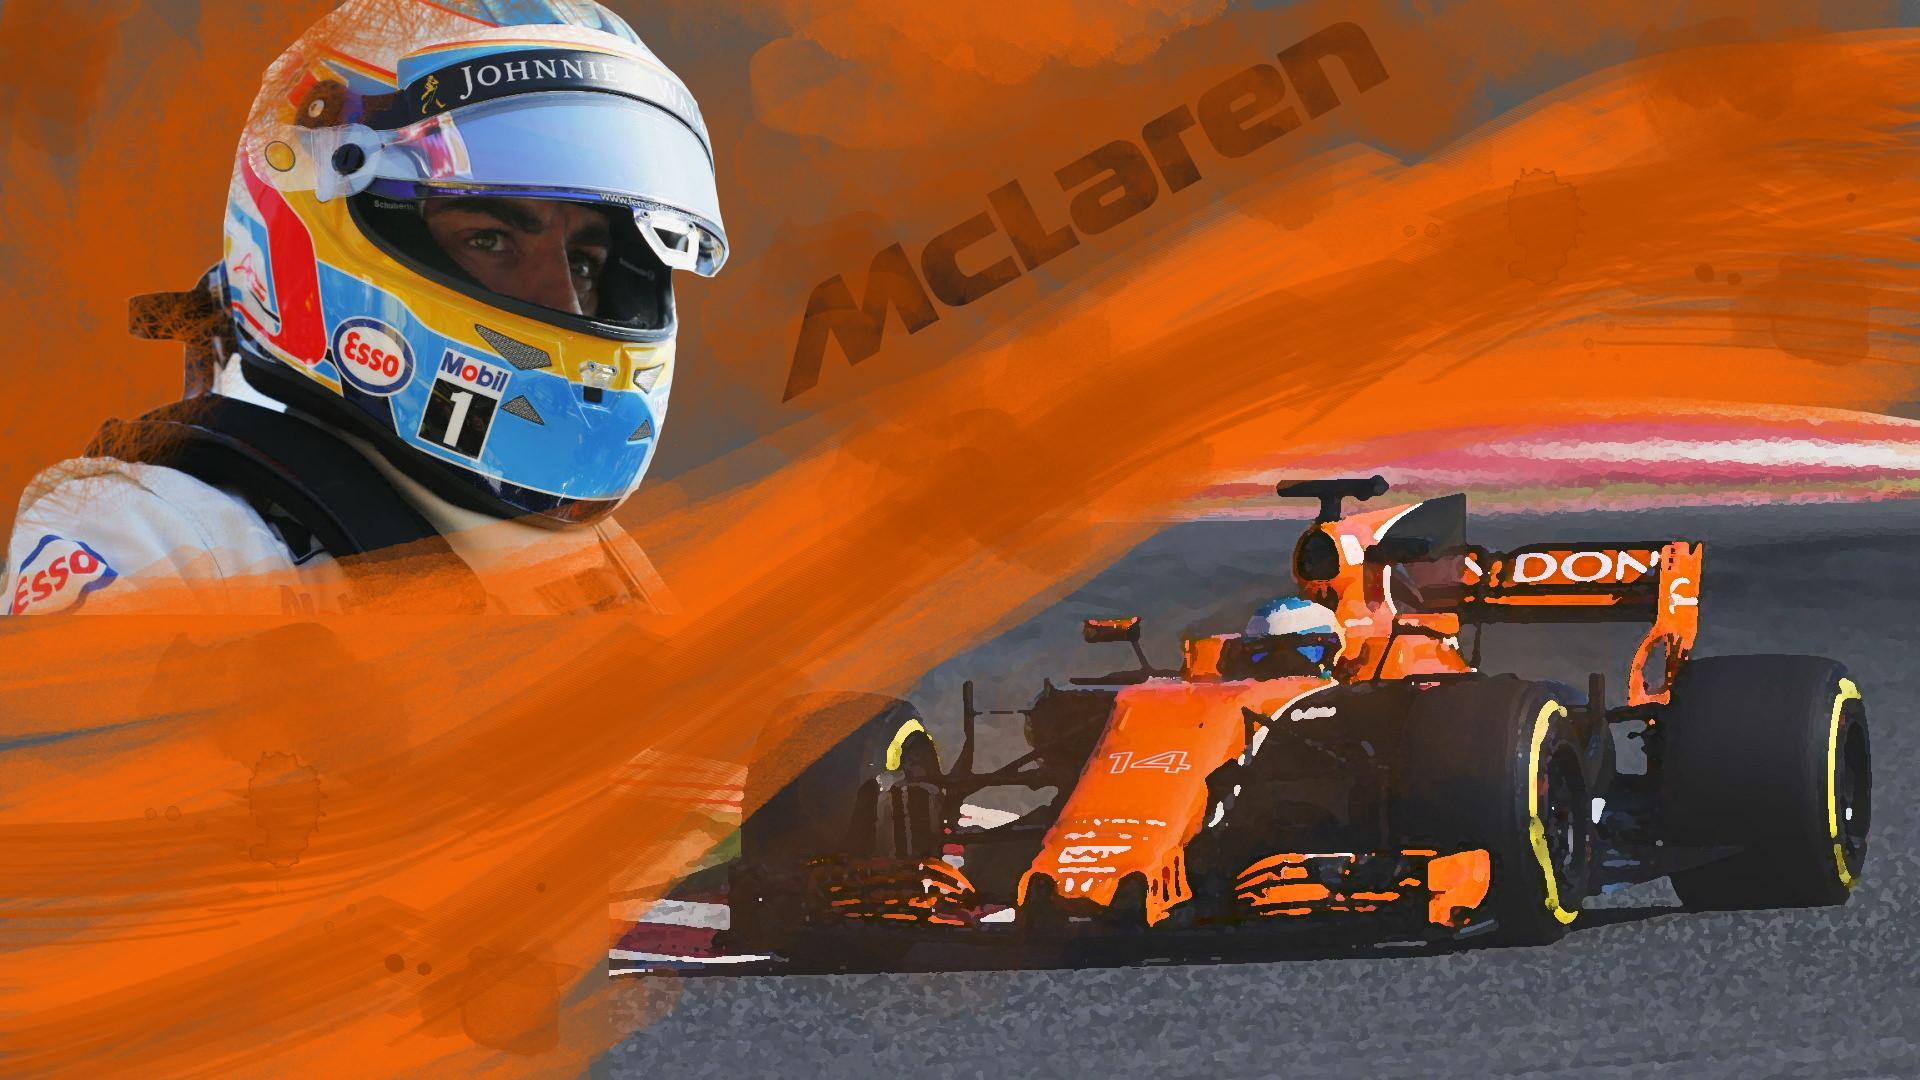 OC] Fernando Alonso Wallpaper : formula1